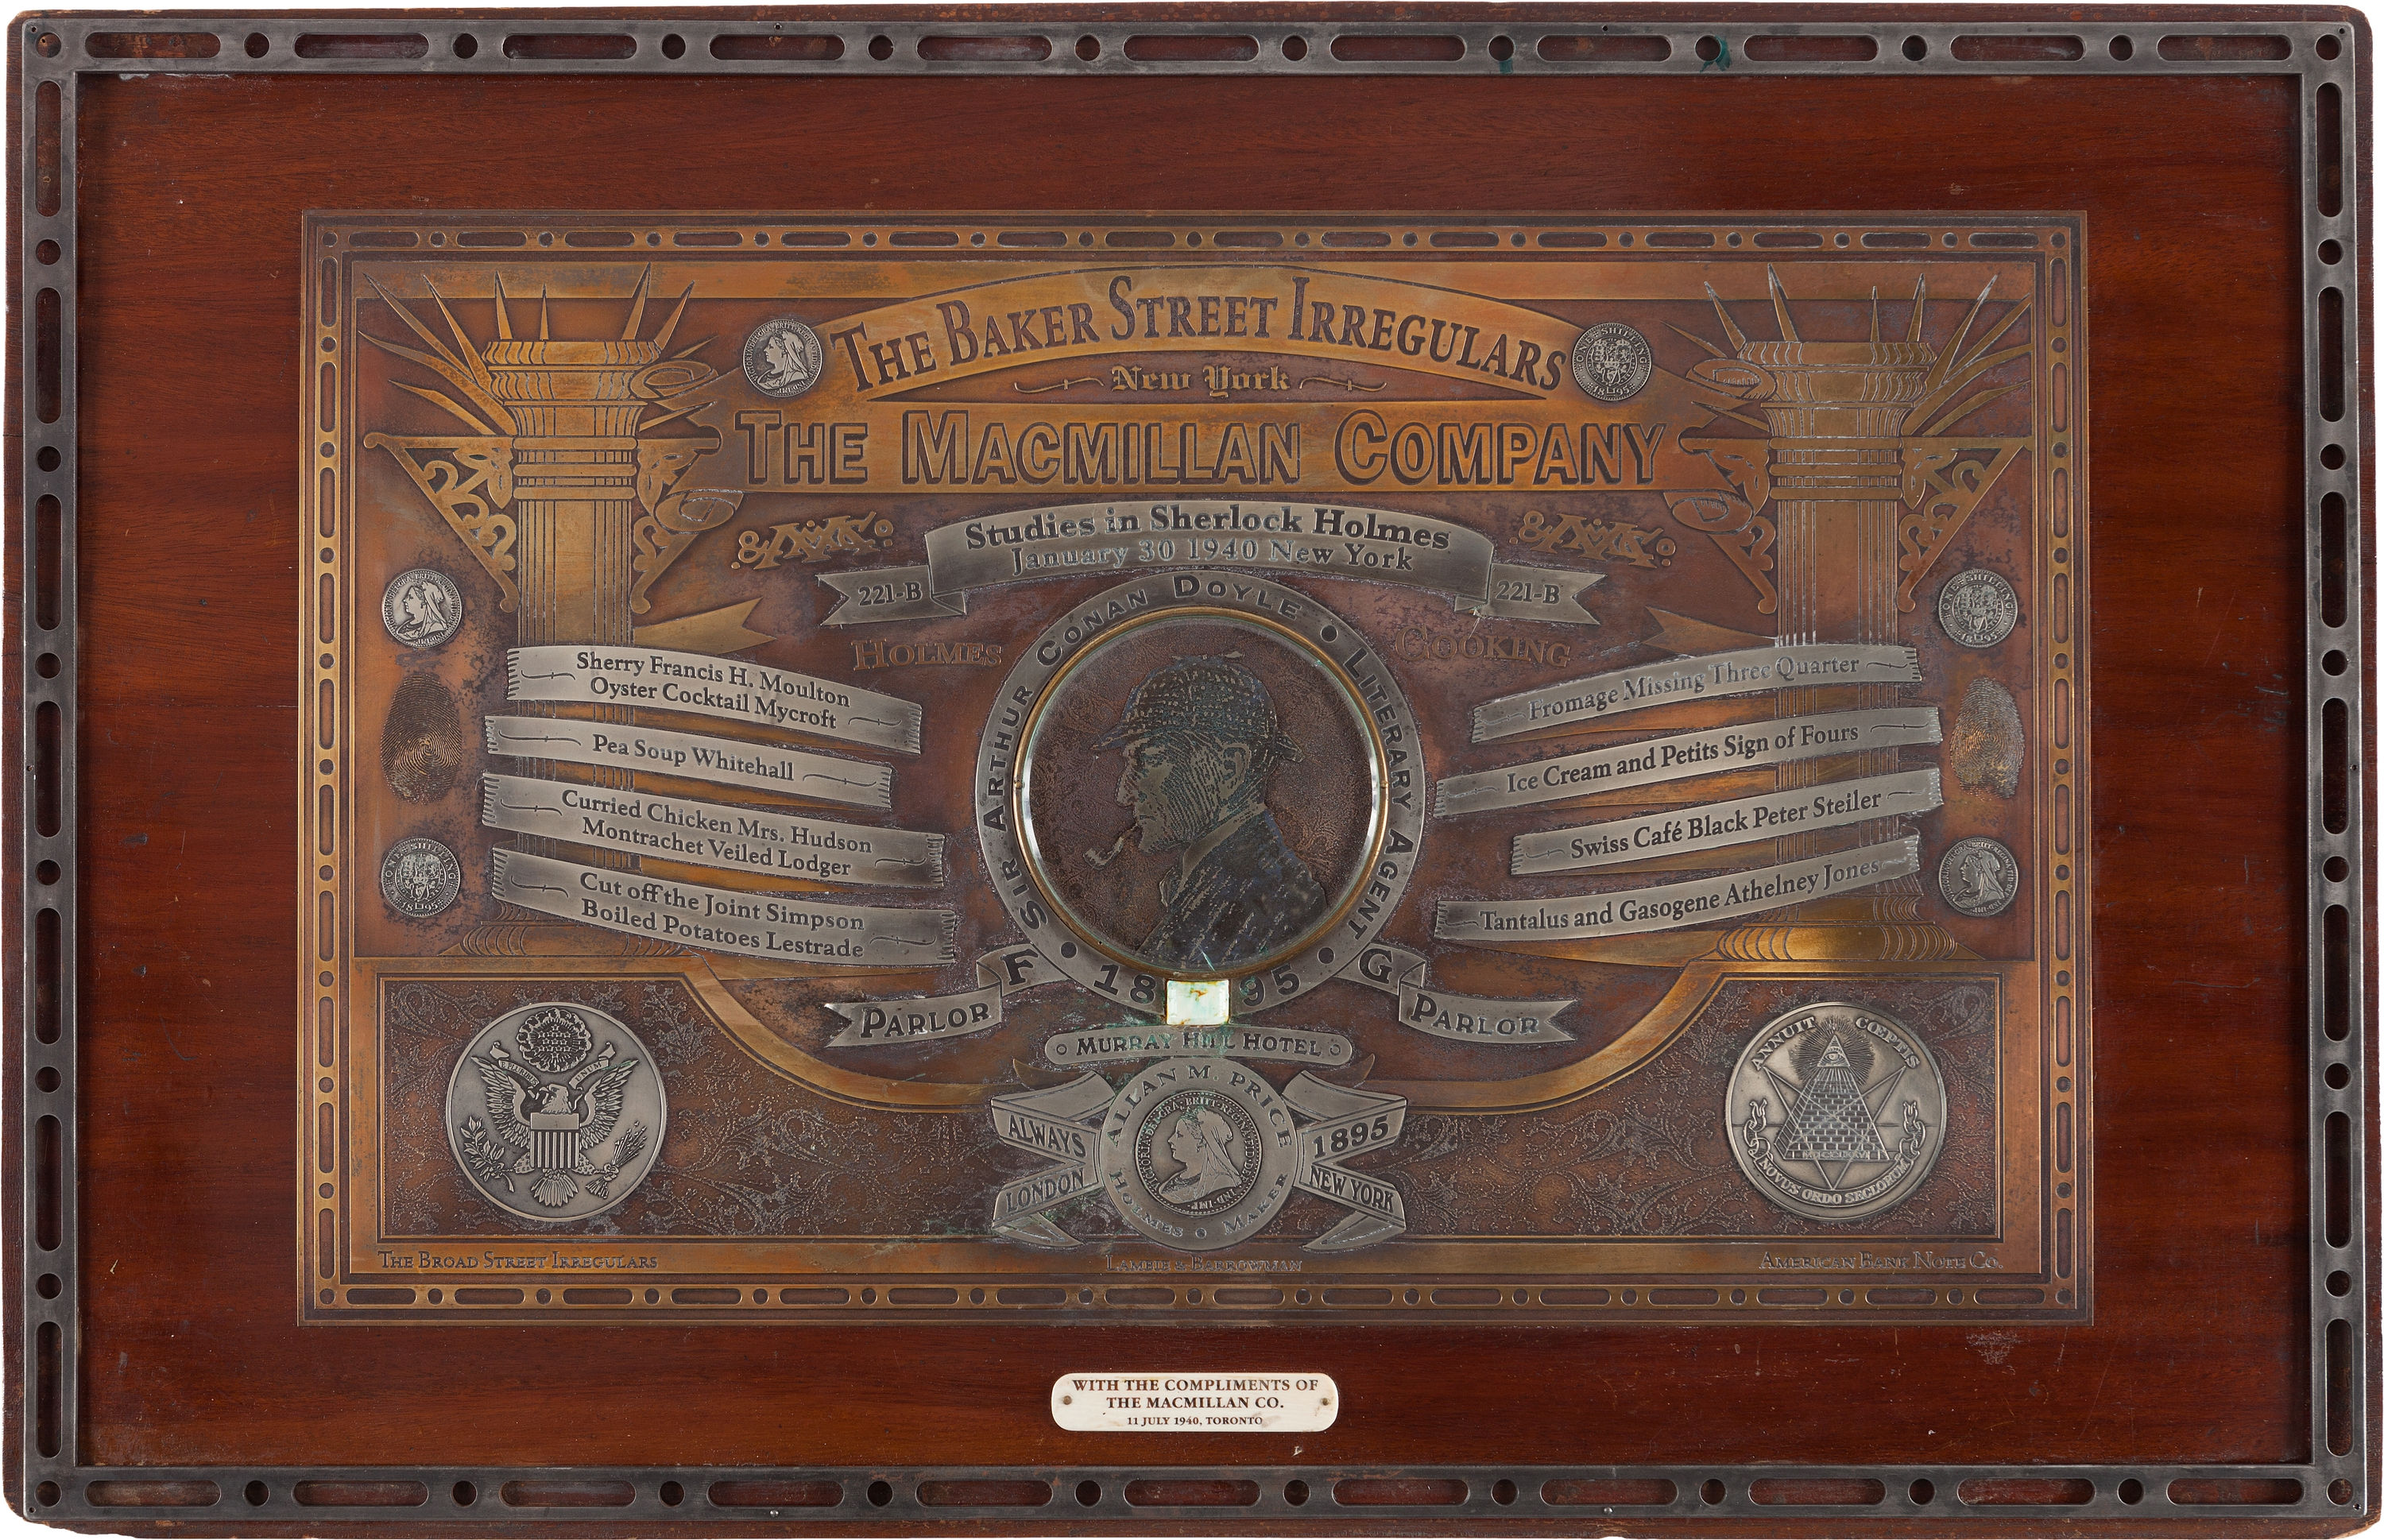 Heritage Auctions' May 2, 2014 Auction Lot Description of the Toronto Irregular Plate